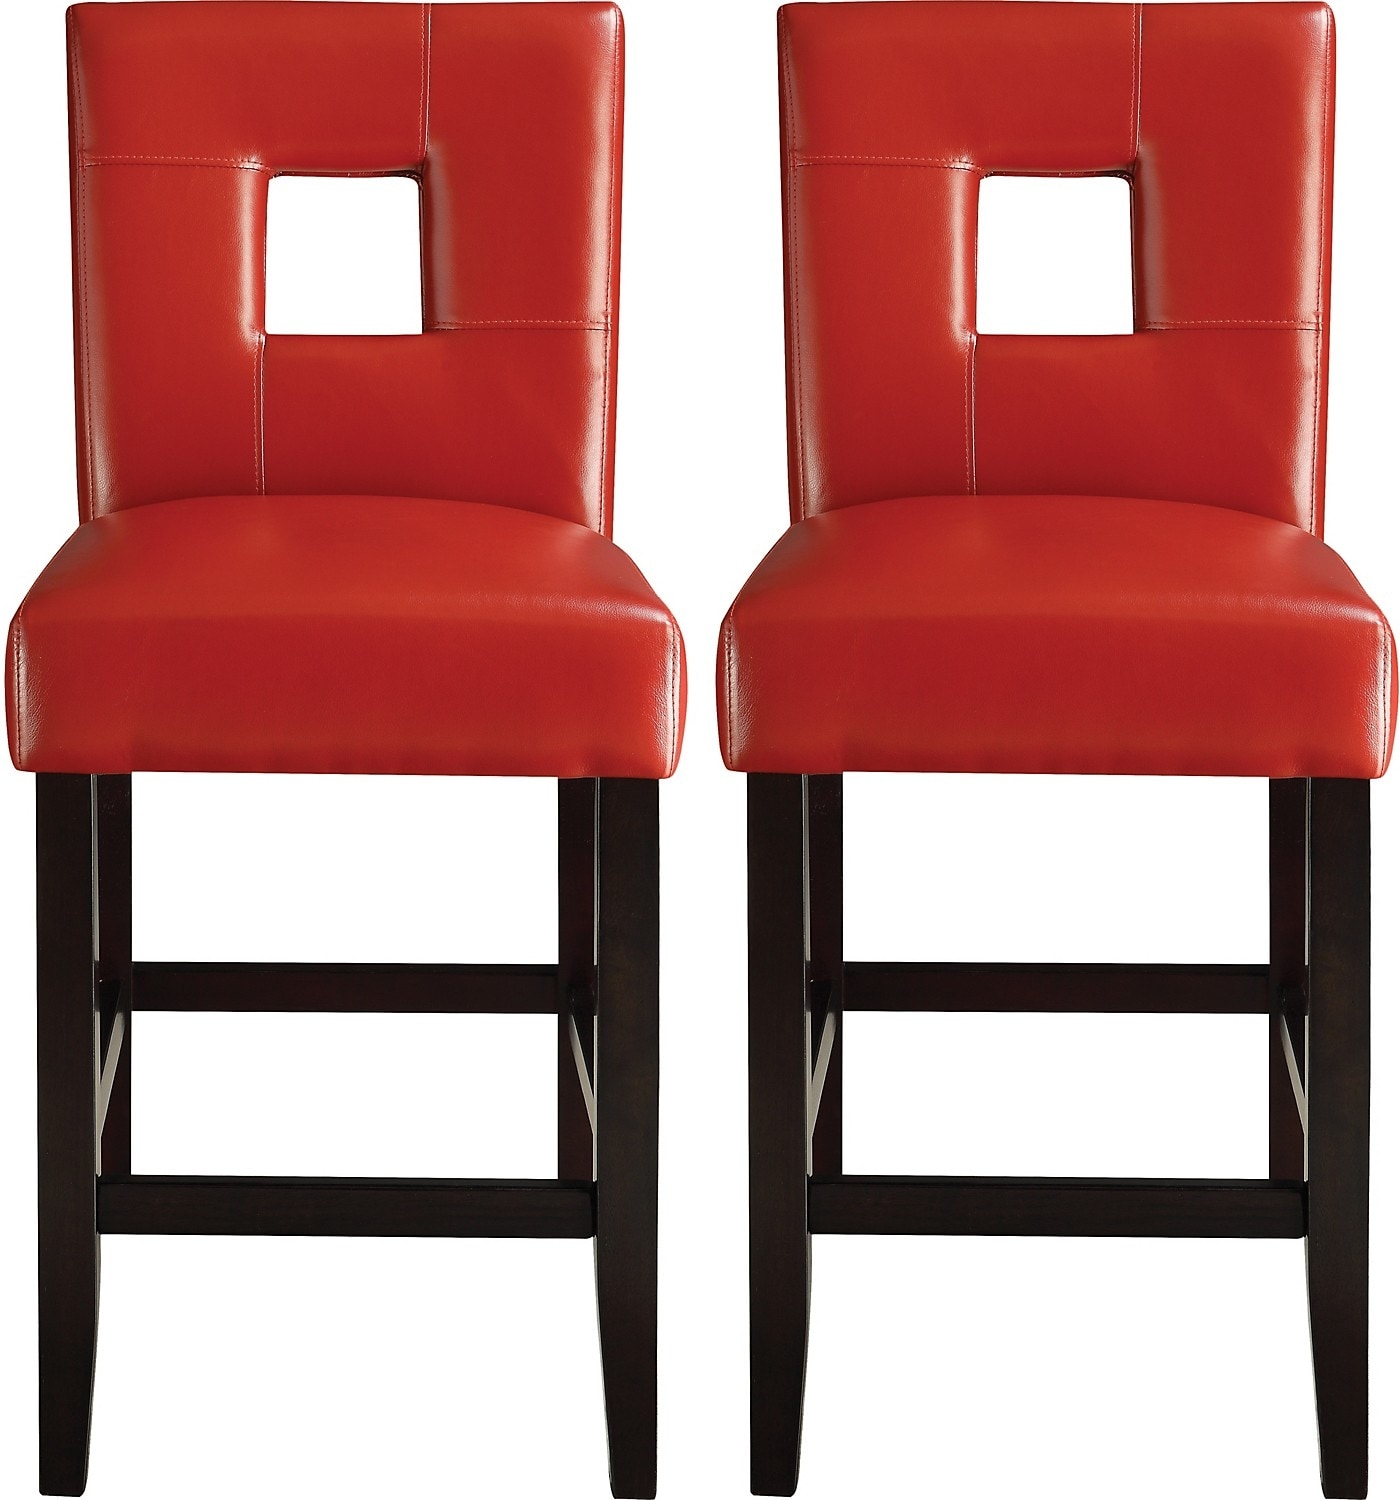 McKenna 2-Piece Counter-Height Dining Chair Package – Red